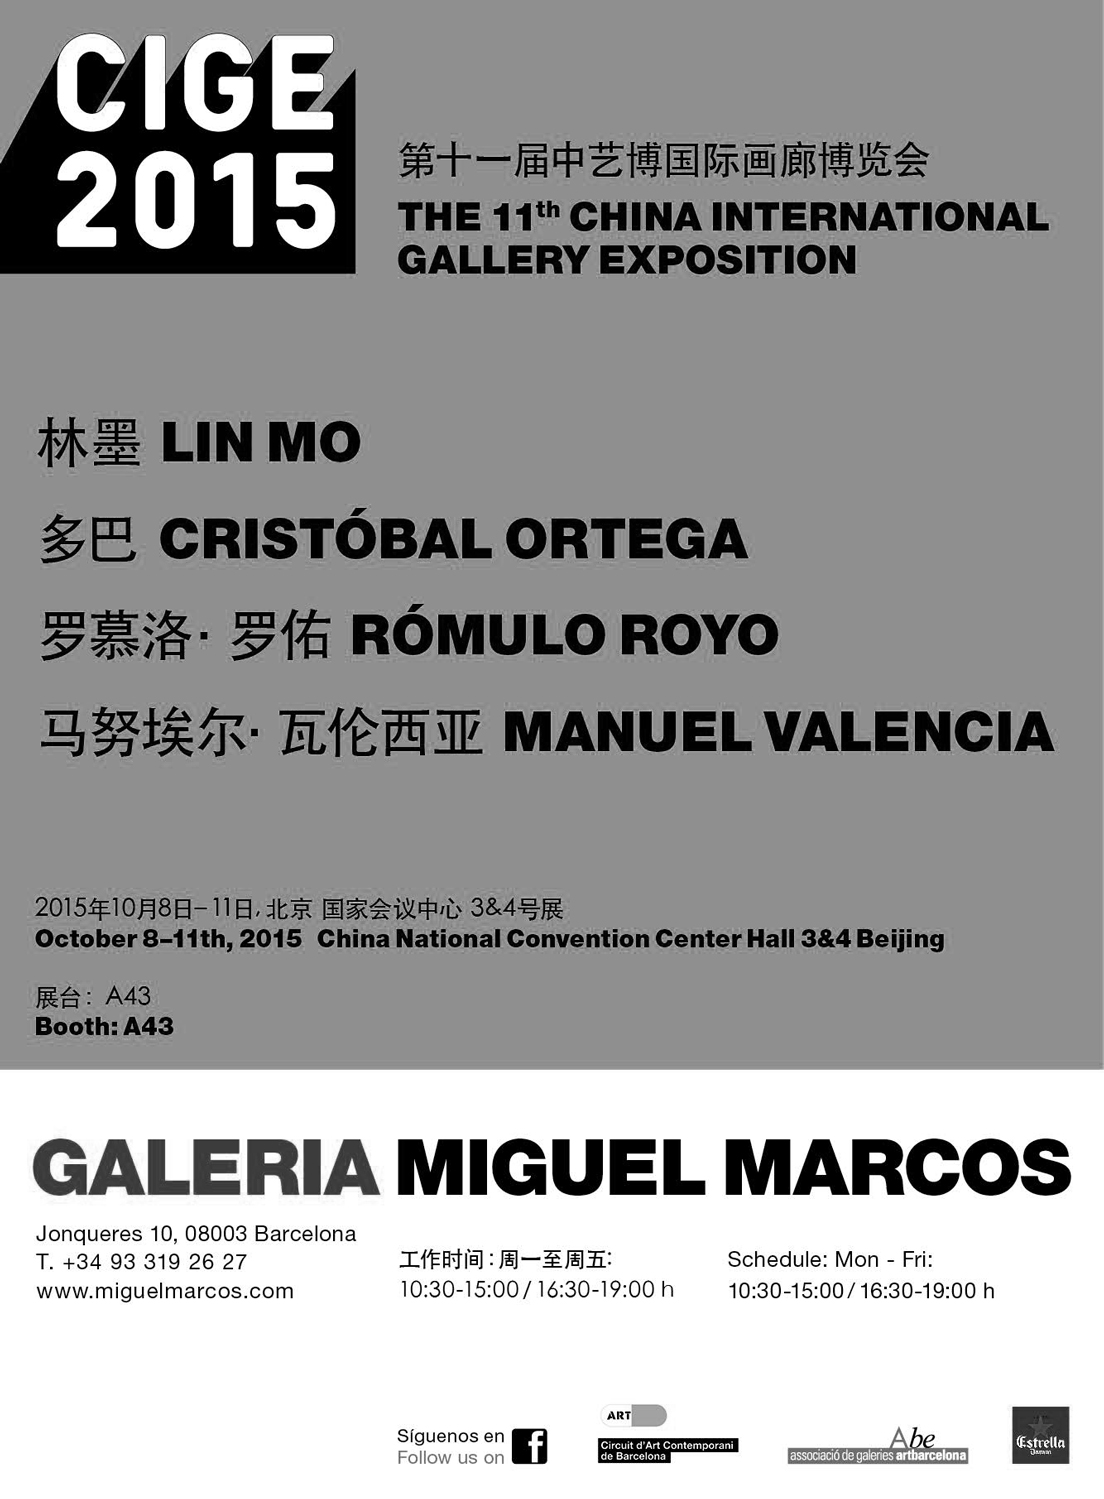 CIGE 2015 - 11th China International Gallery Exposition Invitation card